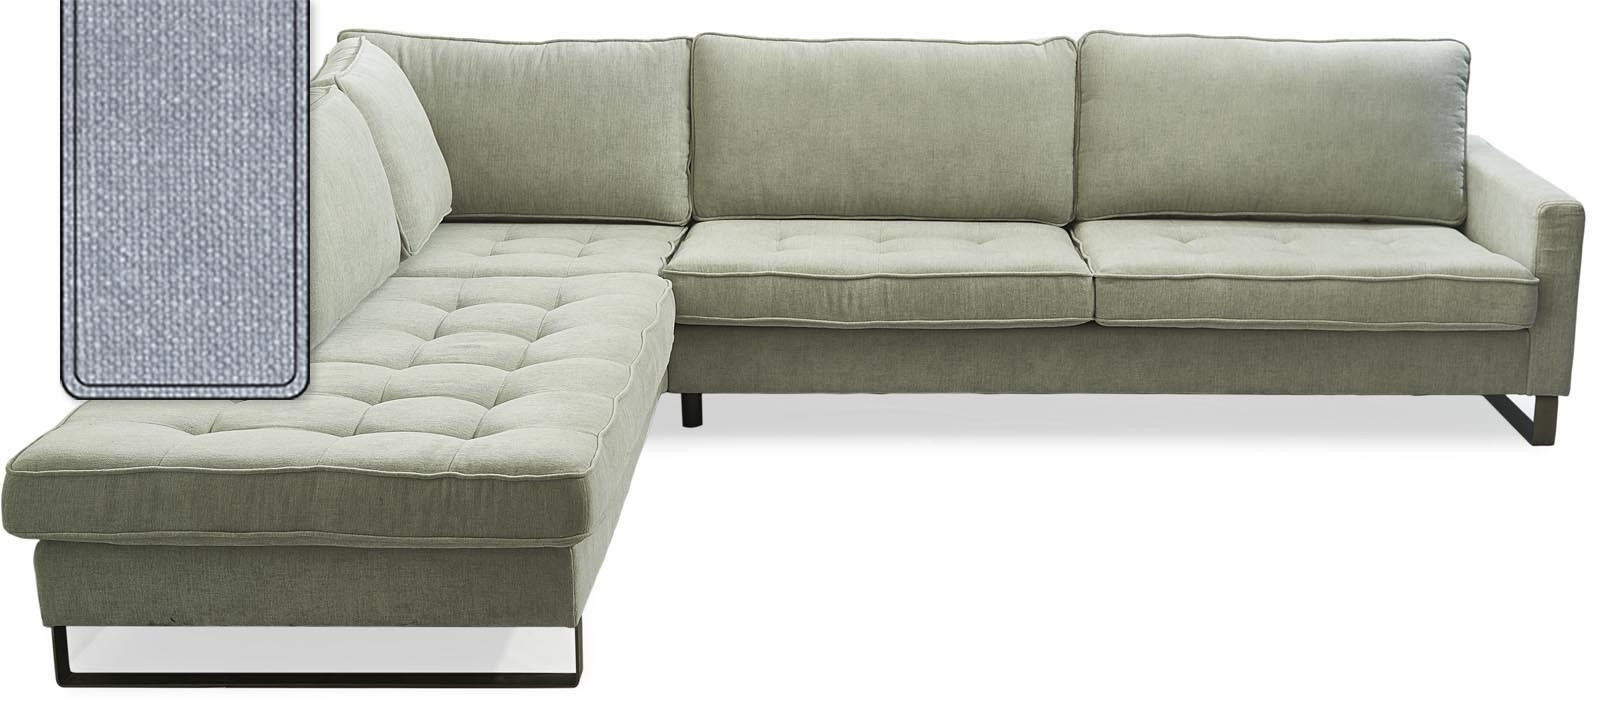 west houston corner sofa chaise longue left cotton blue rivi ra maison. Black Bedroom Furniture Sets. Home Design Ideas